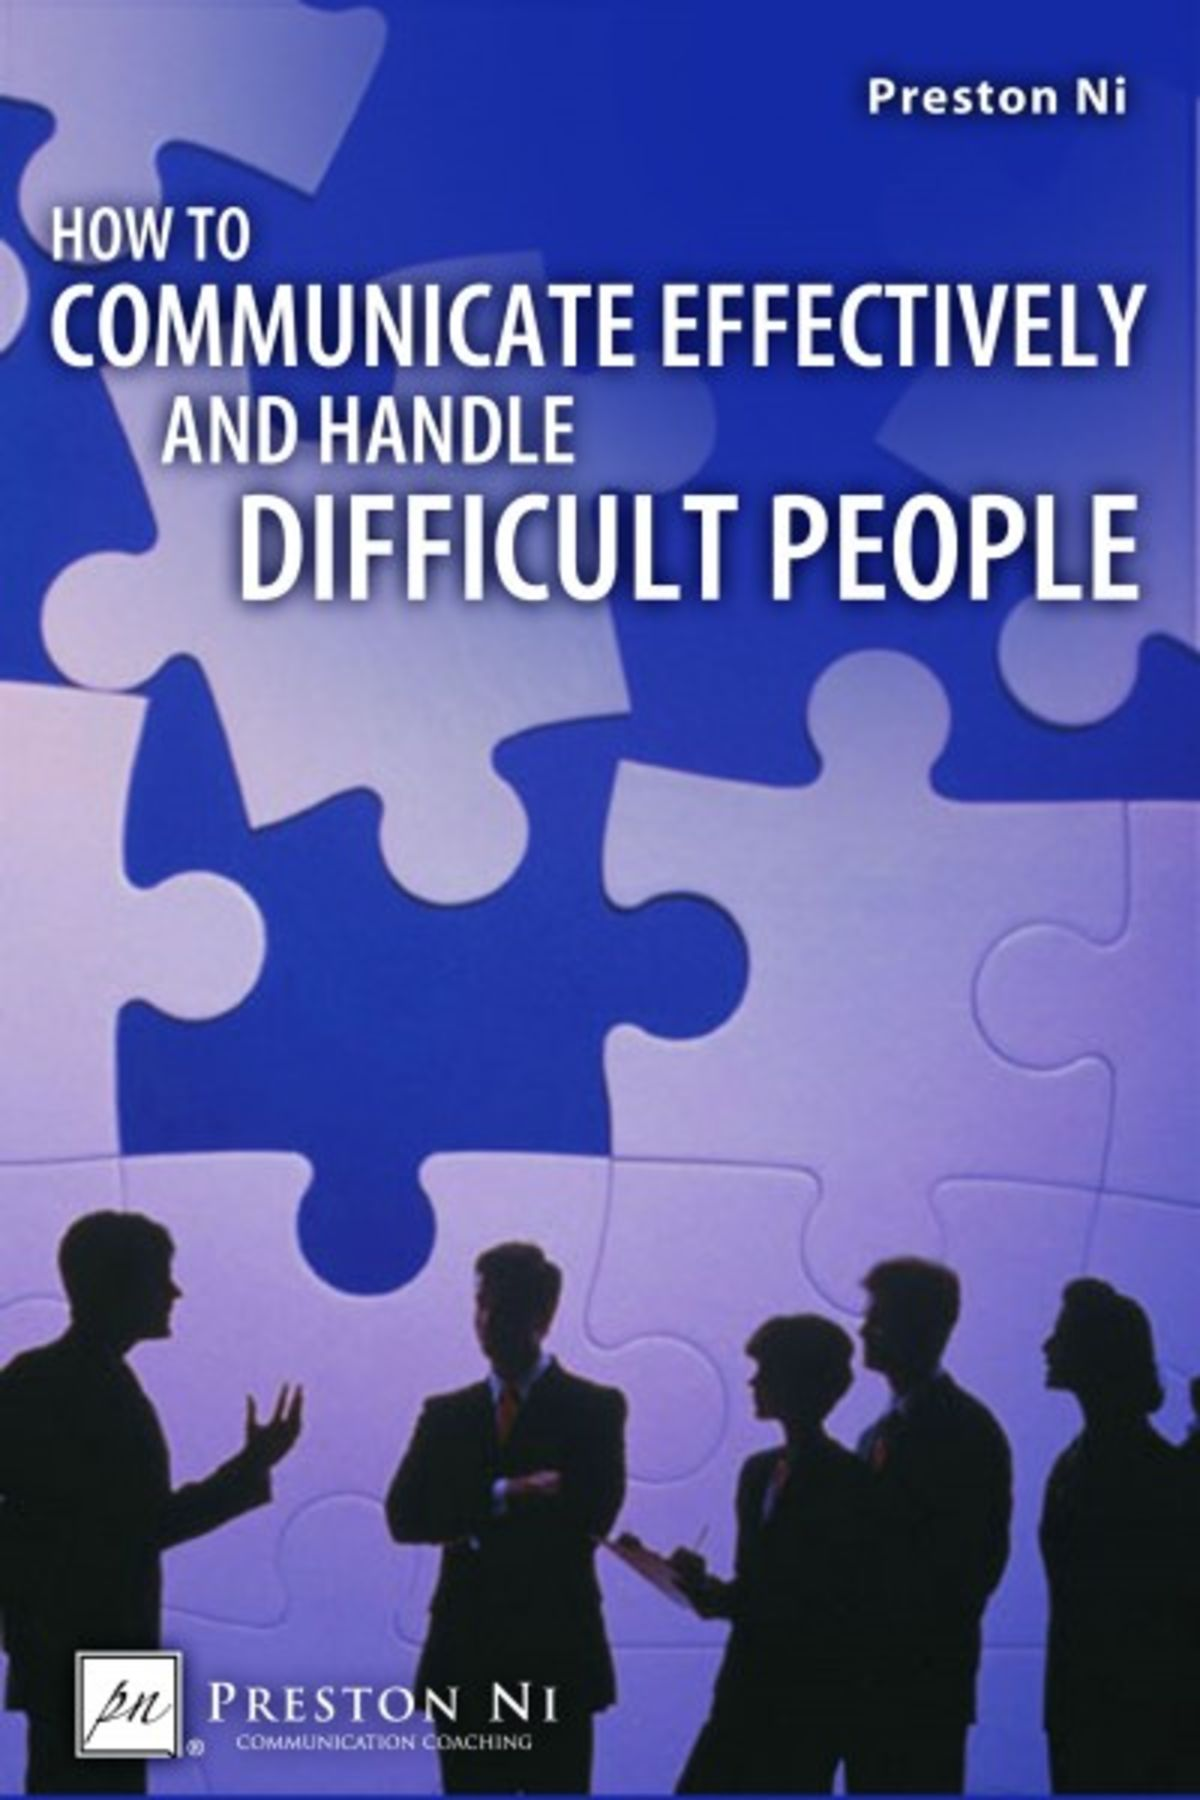 Ten Keys to Handling Unreasonable & Difficult People